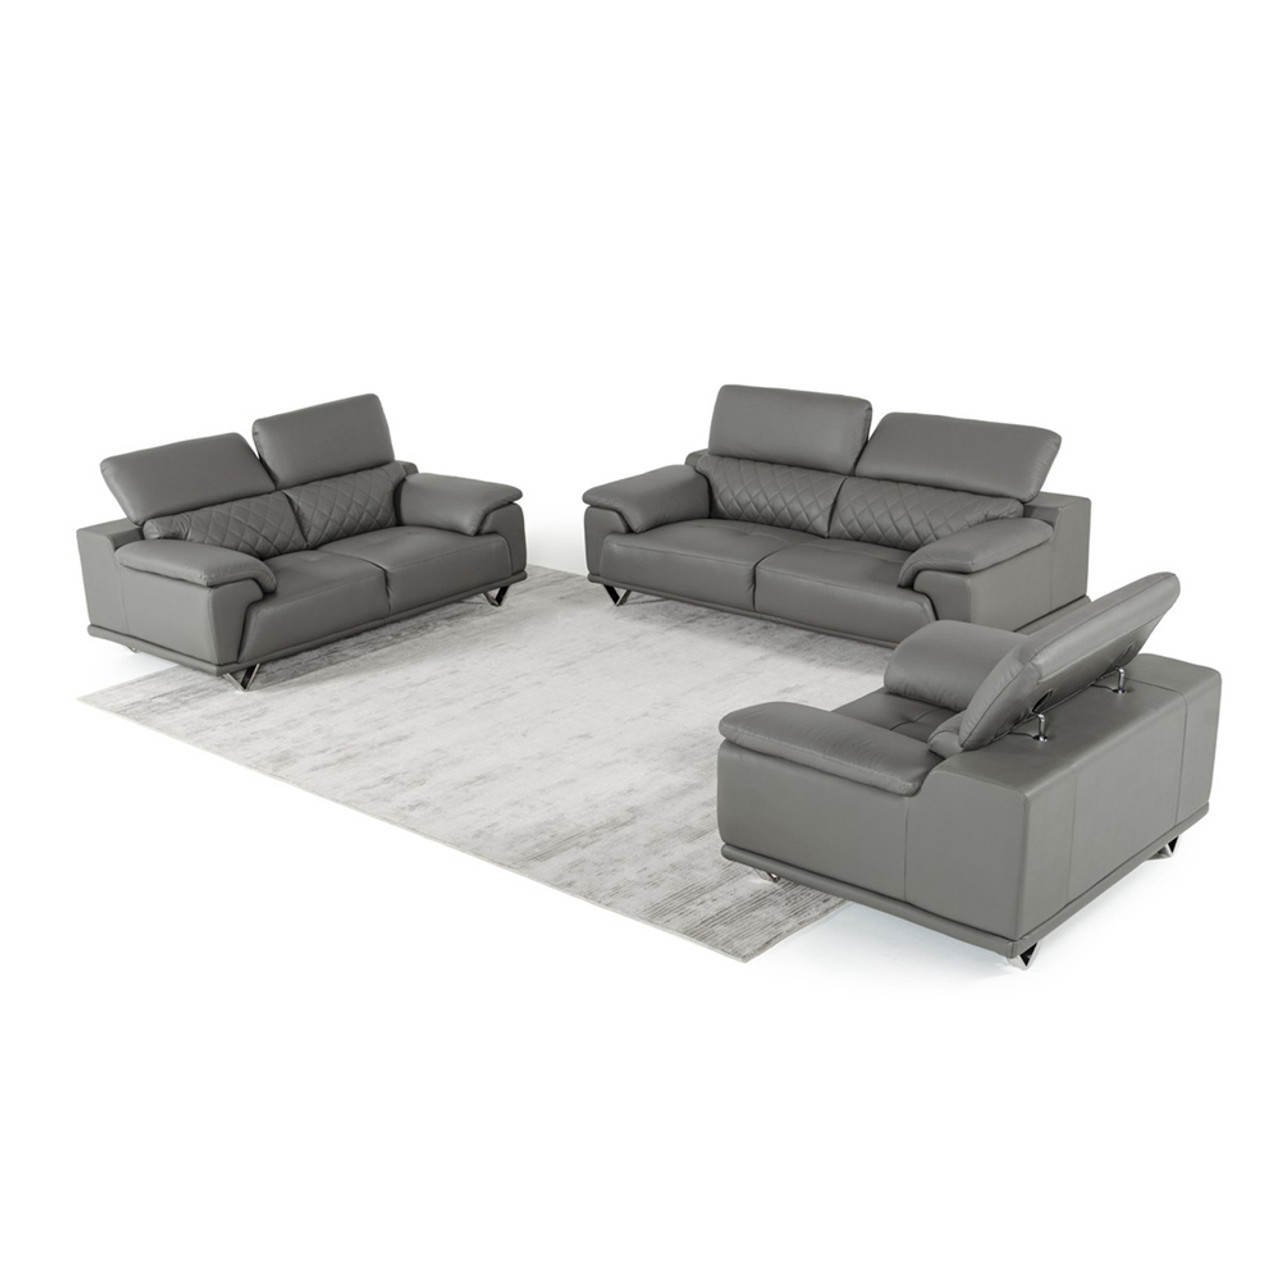 Marvelous Divani Casa Wolford Modern Grey Leather Sofa Set Unemploymentrelief Wooden Chair Designs For Living Room Unemploymentrelieforg